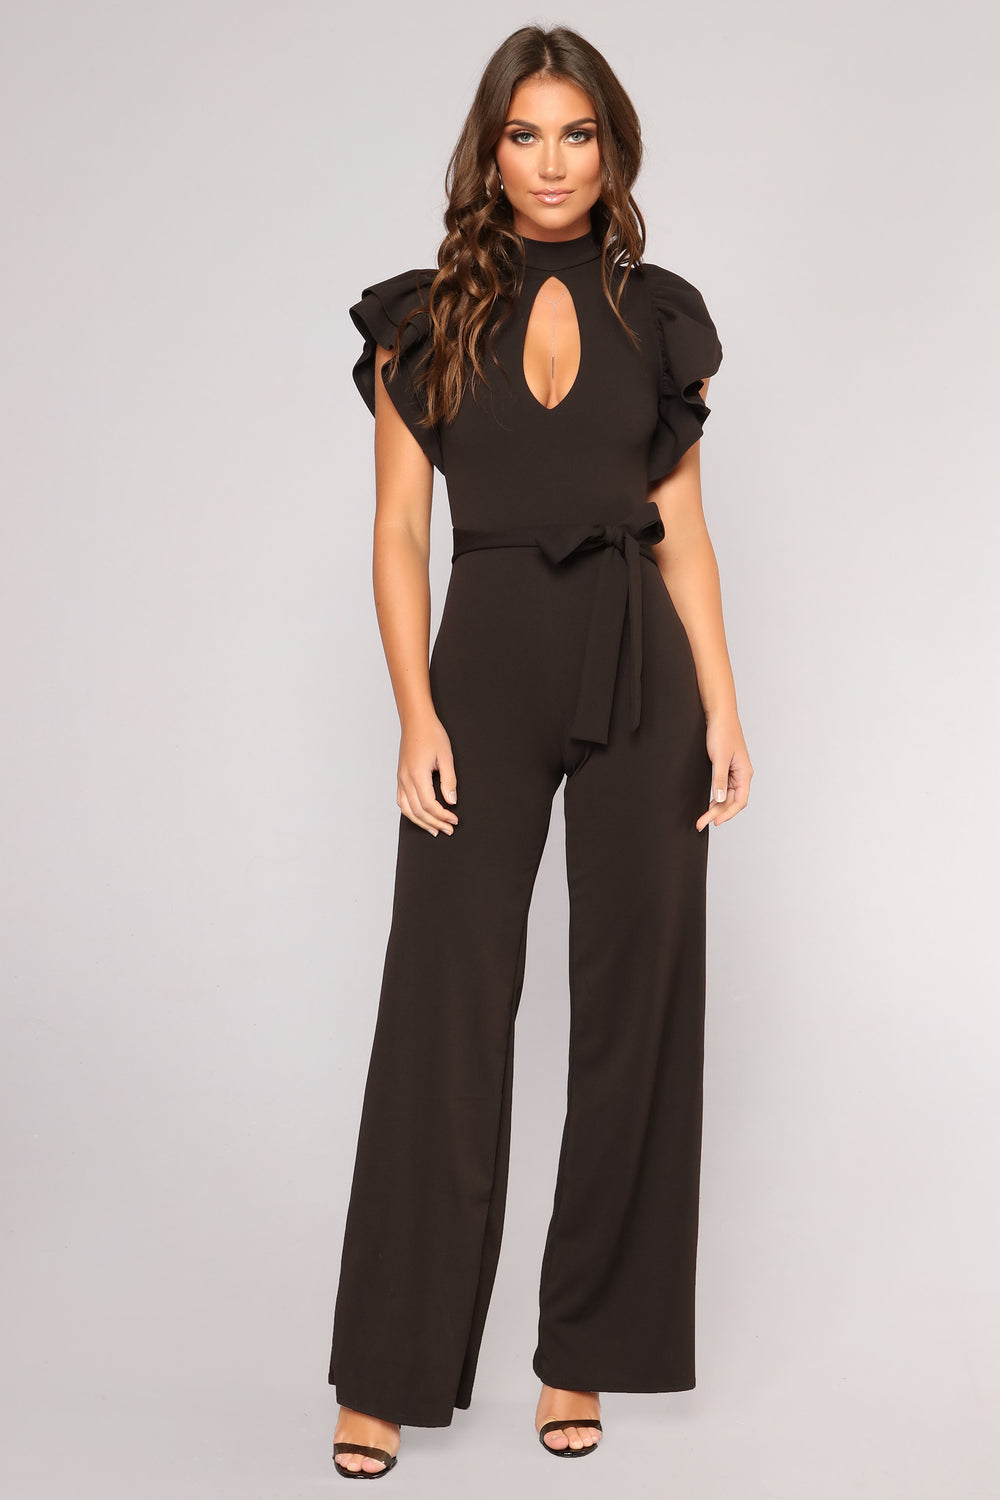 Charmane Ruffle Jumpsuit - Black